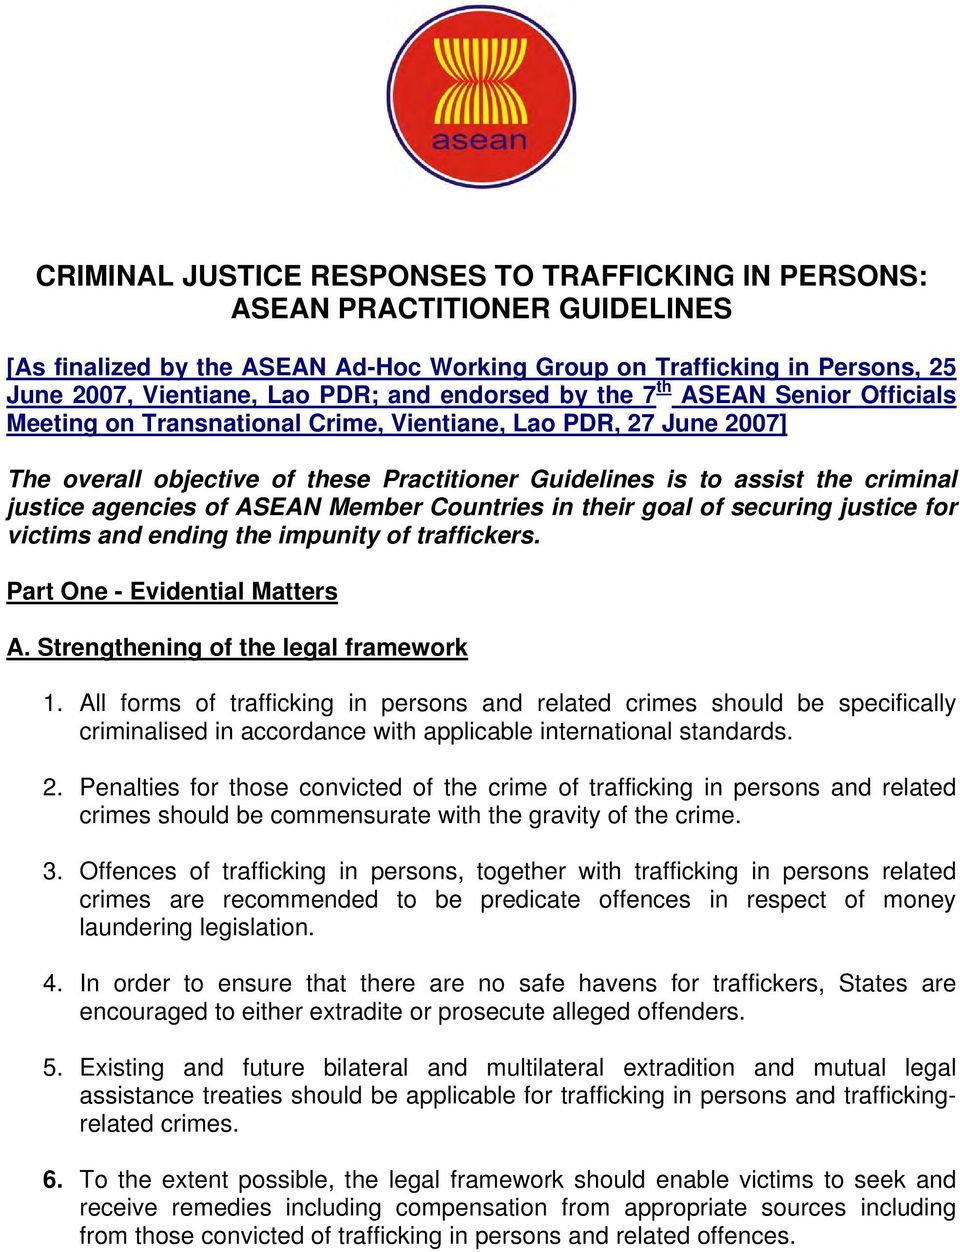 agencies of ASEAN Member Countries in their goal of securing justice for victims and ending the impunity of traffickers. Part One - Evidential Matters A. Strengthening of the legal framework 1.